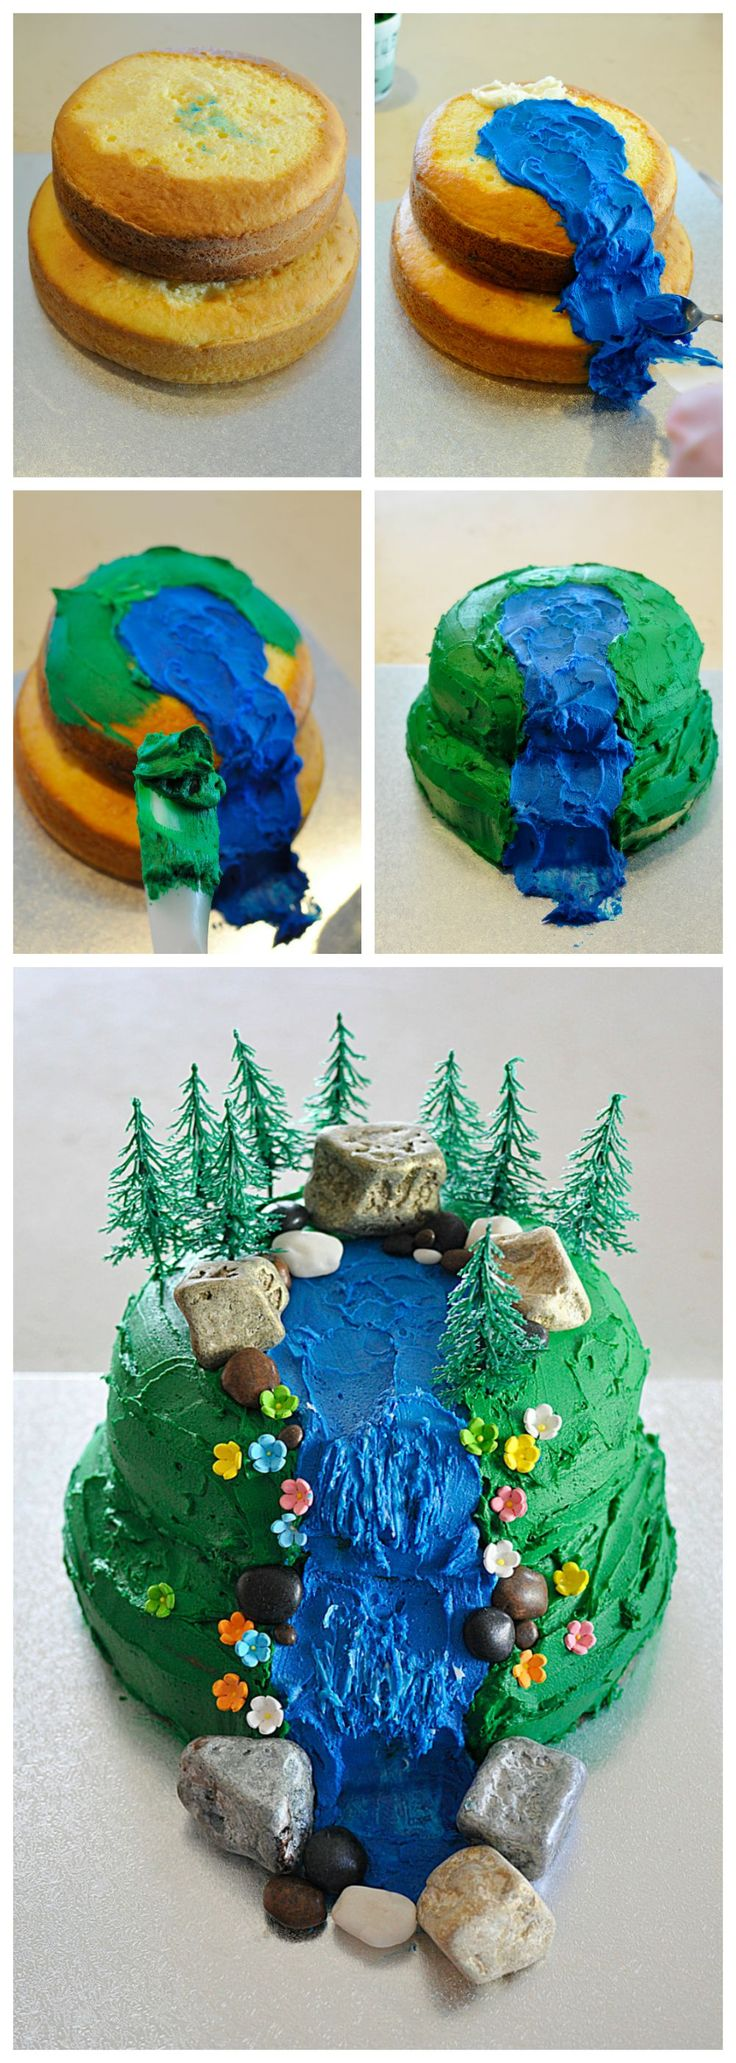 How to make a waterfall cake - check out the blog to see how easy it is and all the elements you need